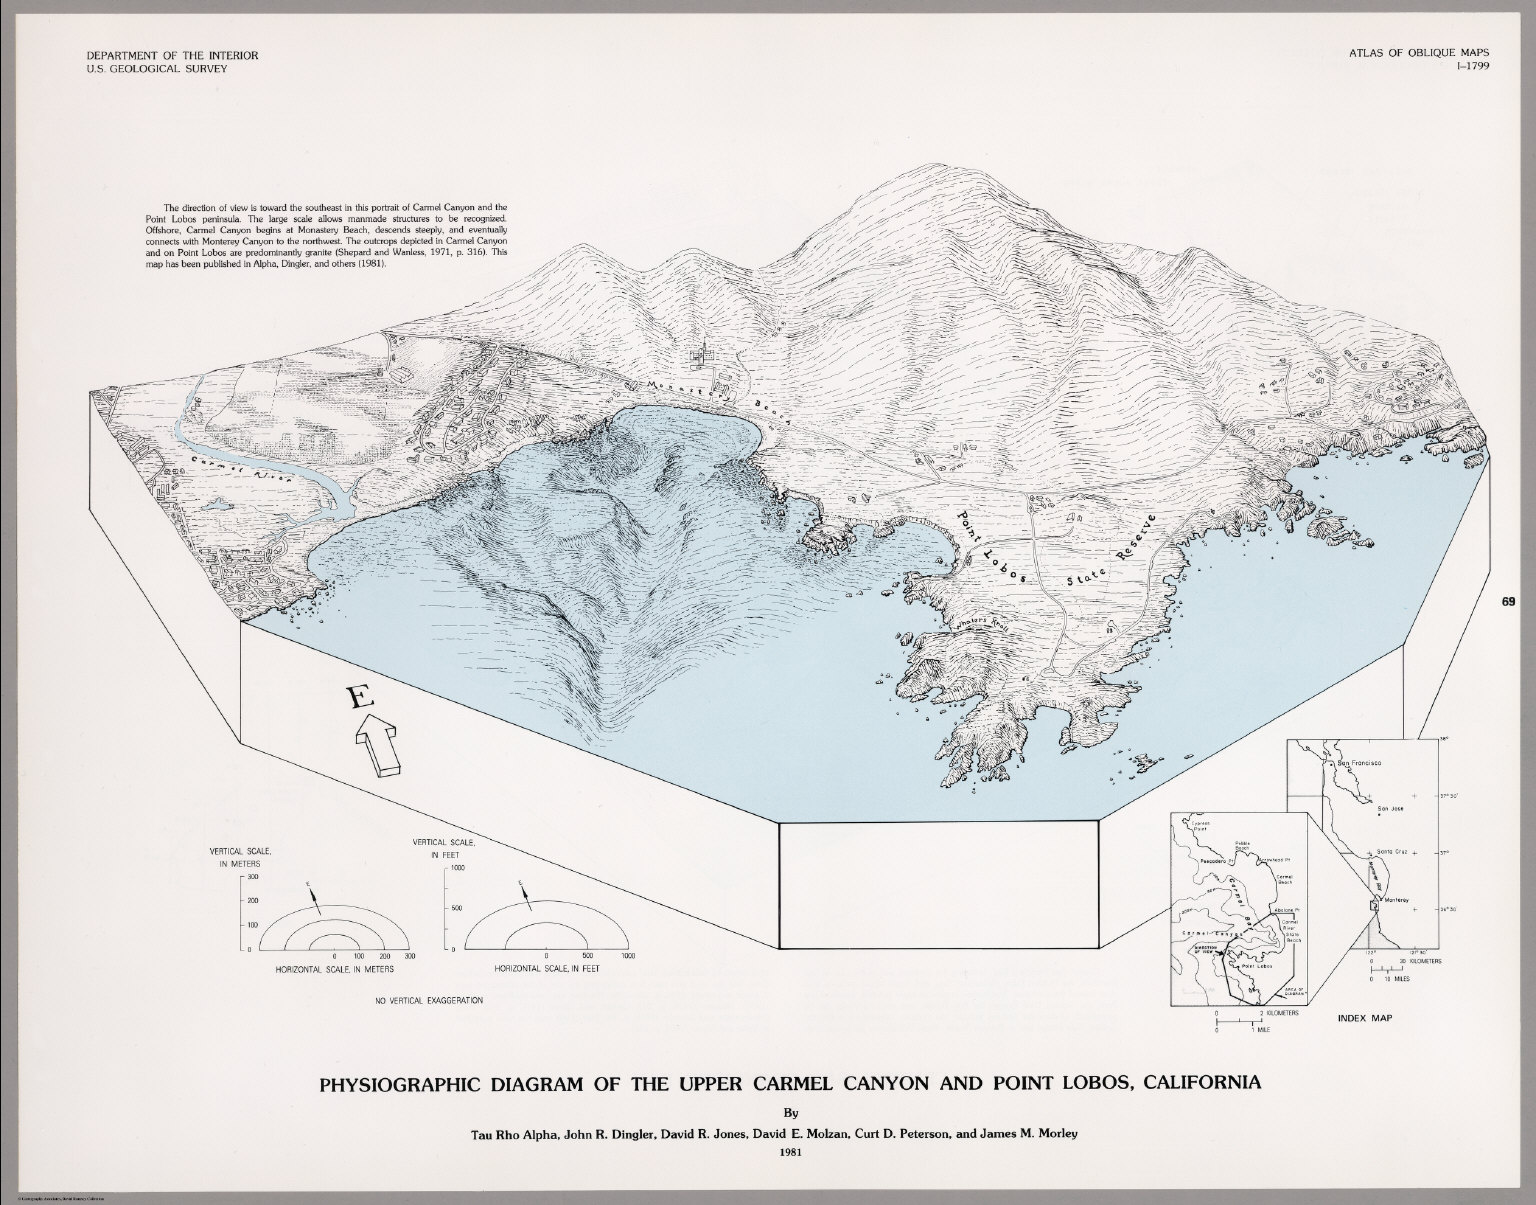 Physiographic diagram of the upper carmel canyon and point lobos physiographic diagram of the upper carmel canyon and point lobos california david rumsey historical map collection ccuart Choice Image